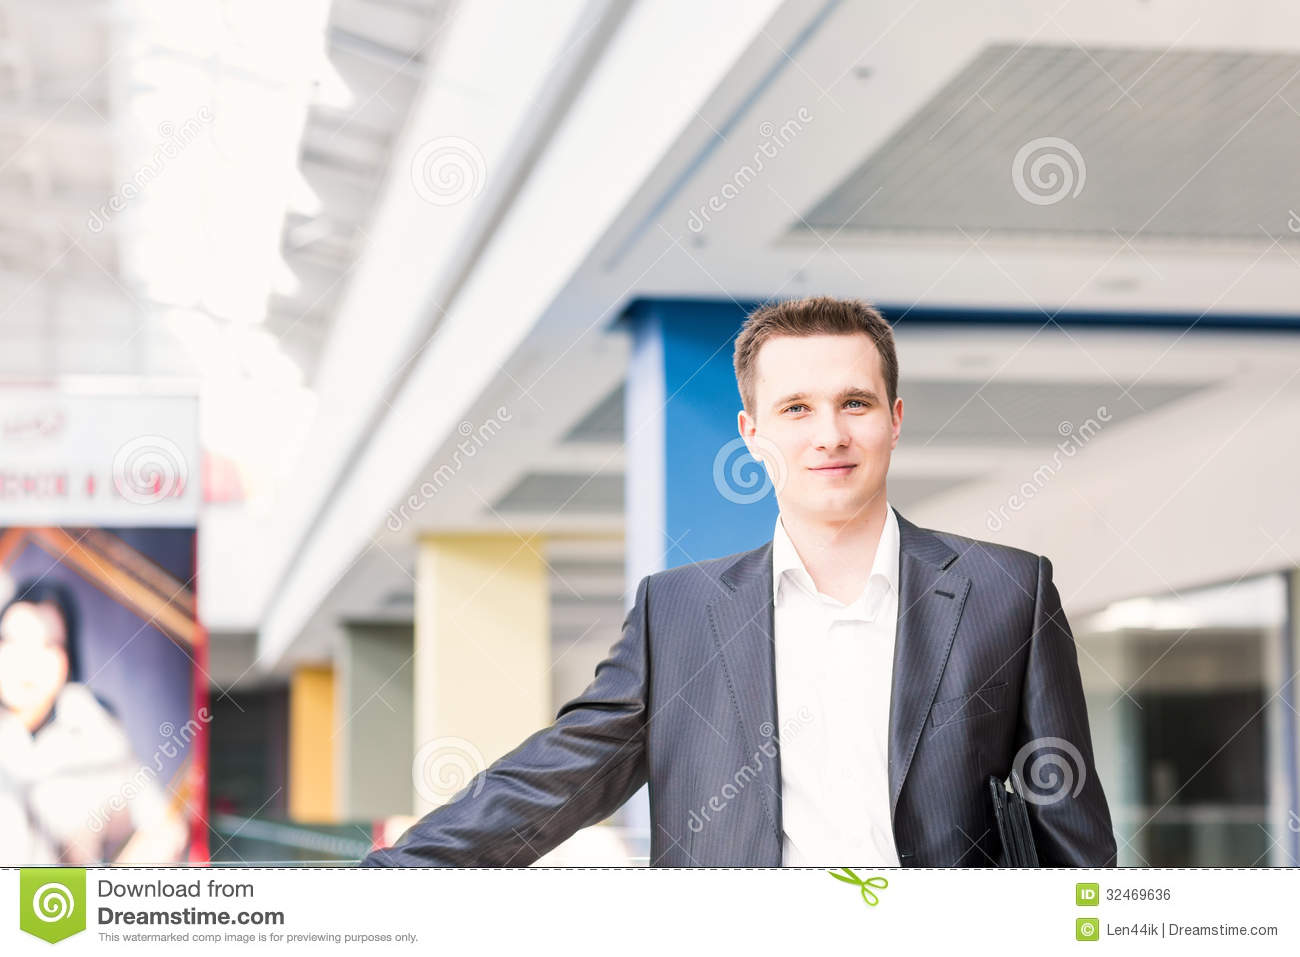 Royalty Free Stock Image  Handsome young and successful businessmanHandsome Businessman Successful